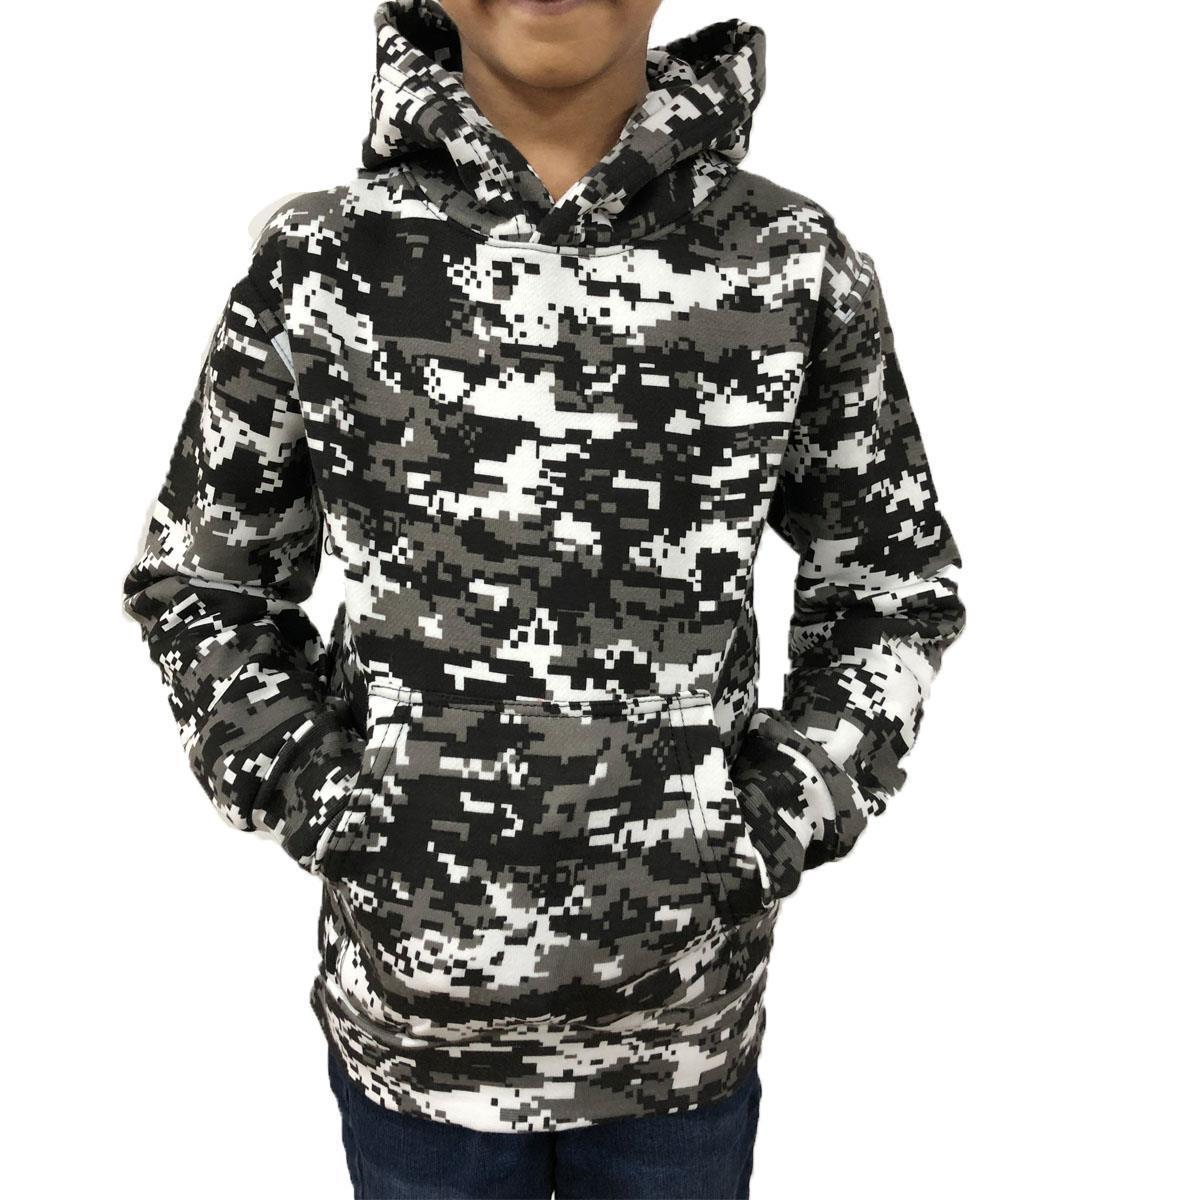 43720902cb0cb Details about Game Kids Digital Camo Urban Hoody | Army Camouflage Hooded  Top